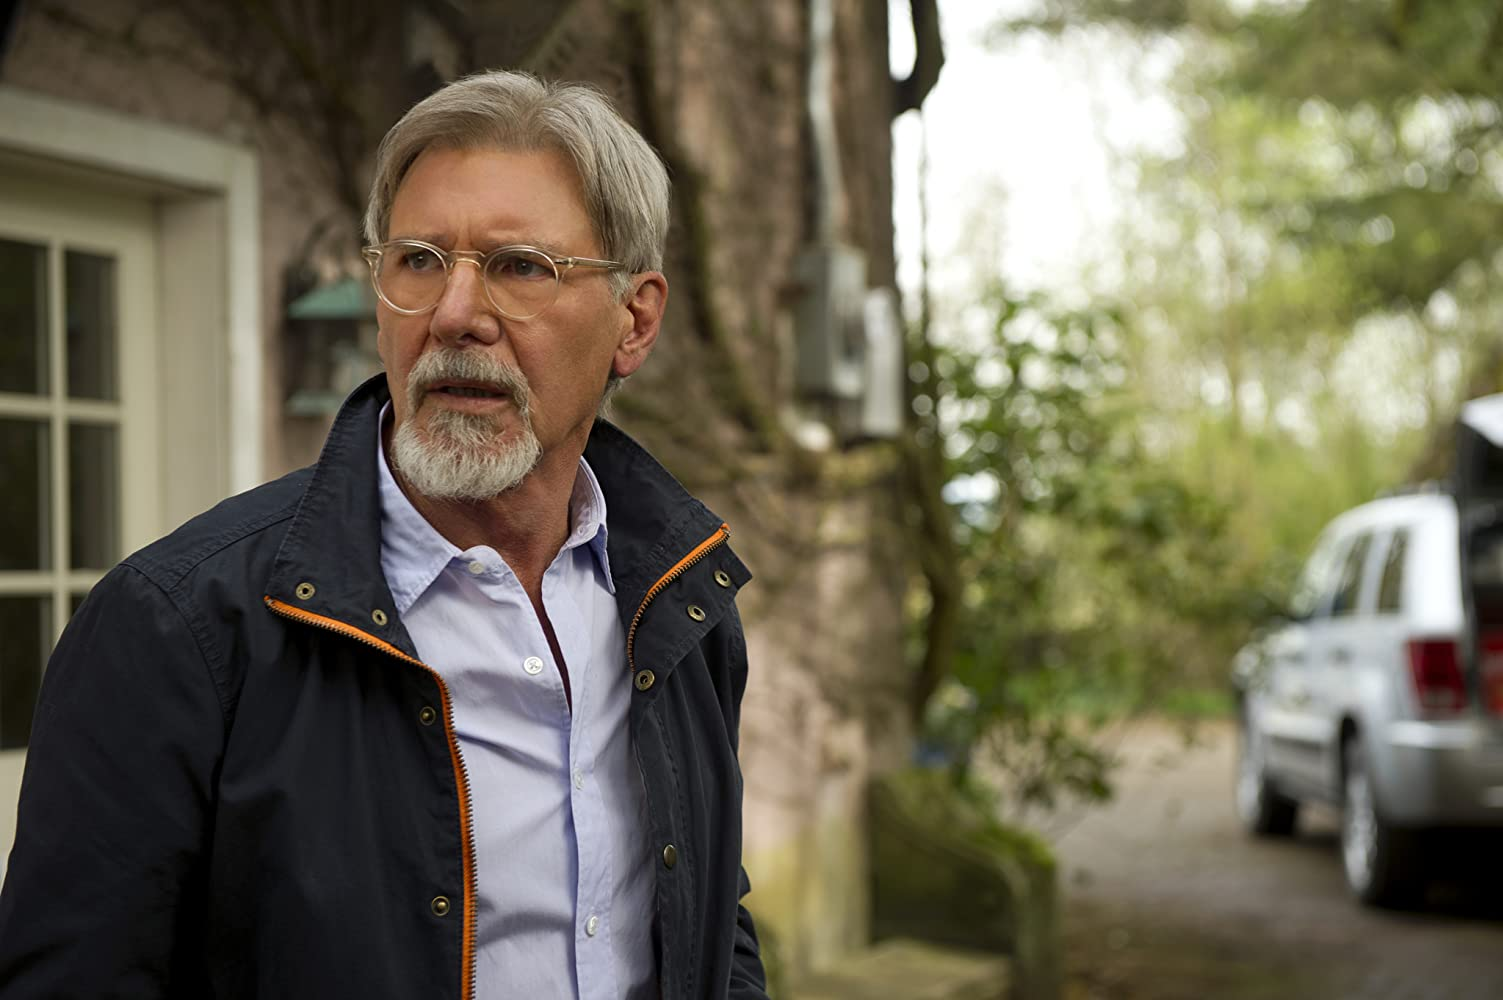 Harrison Ford in The Age of Adaline (2015)